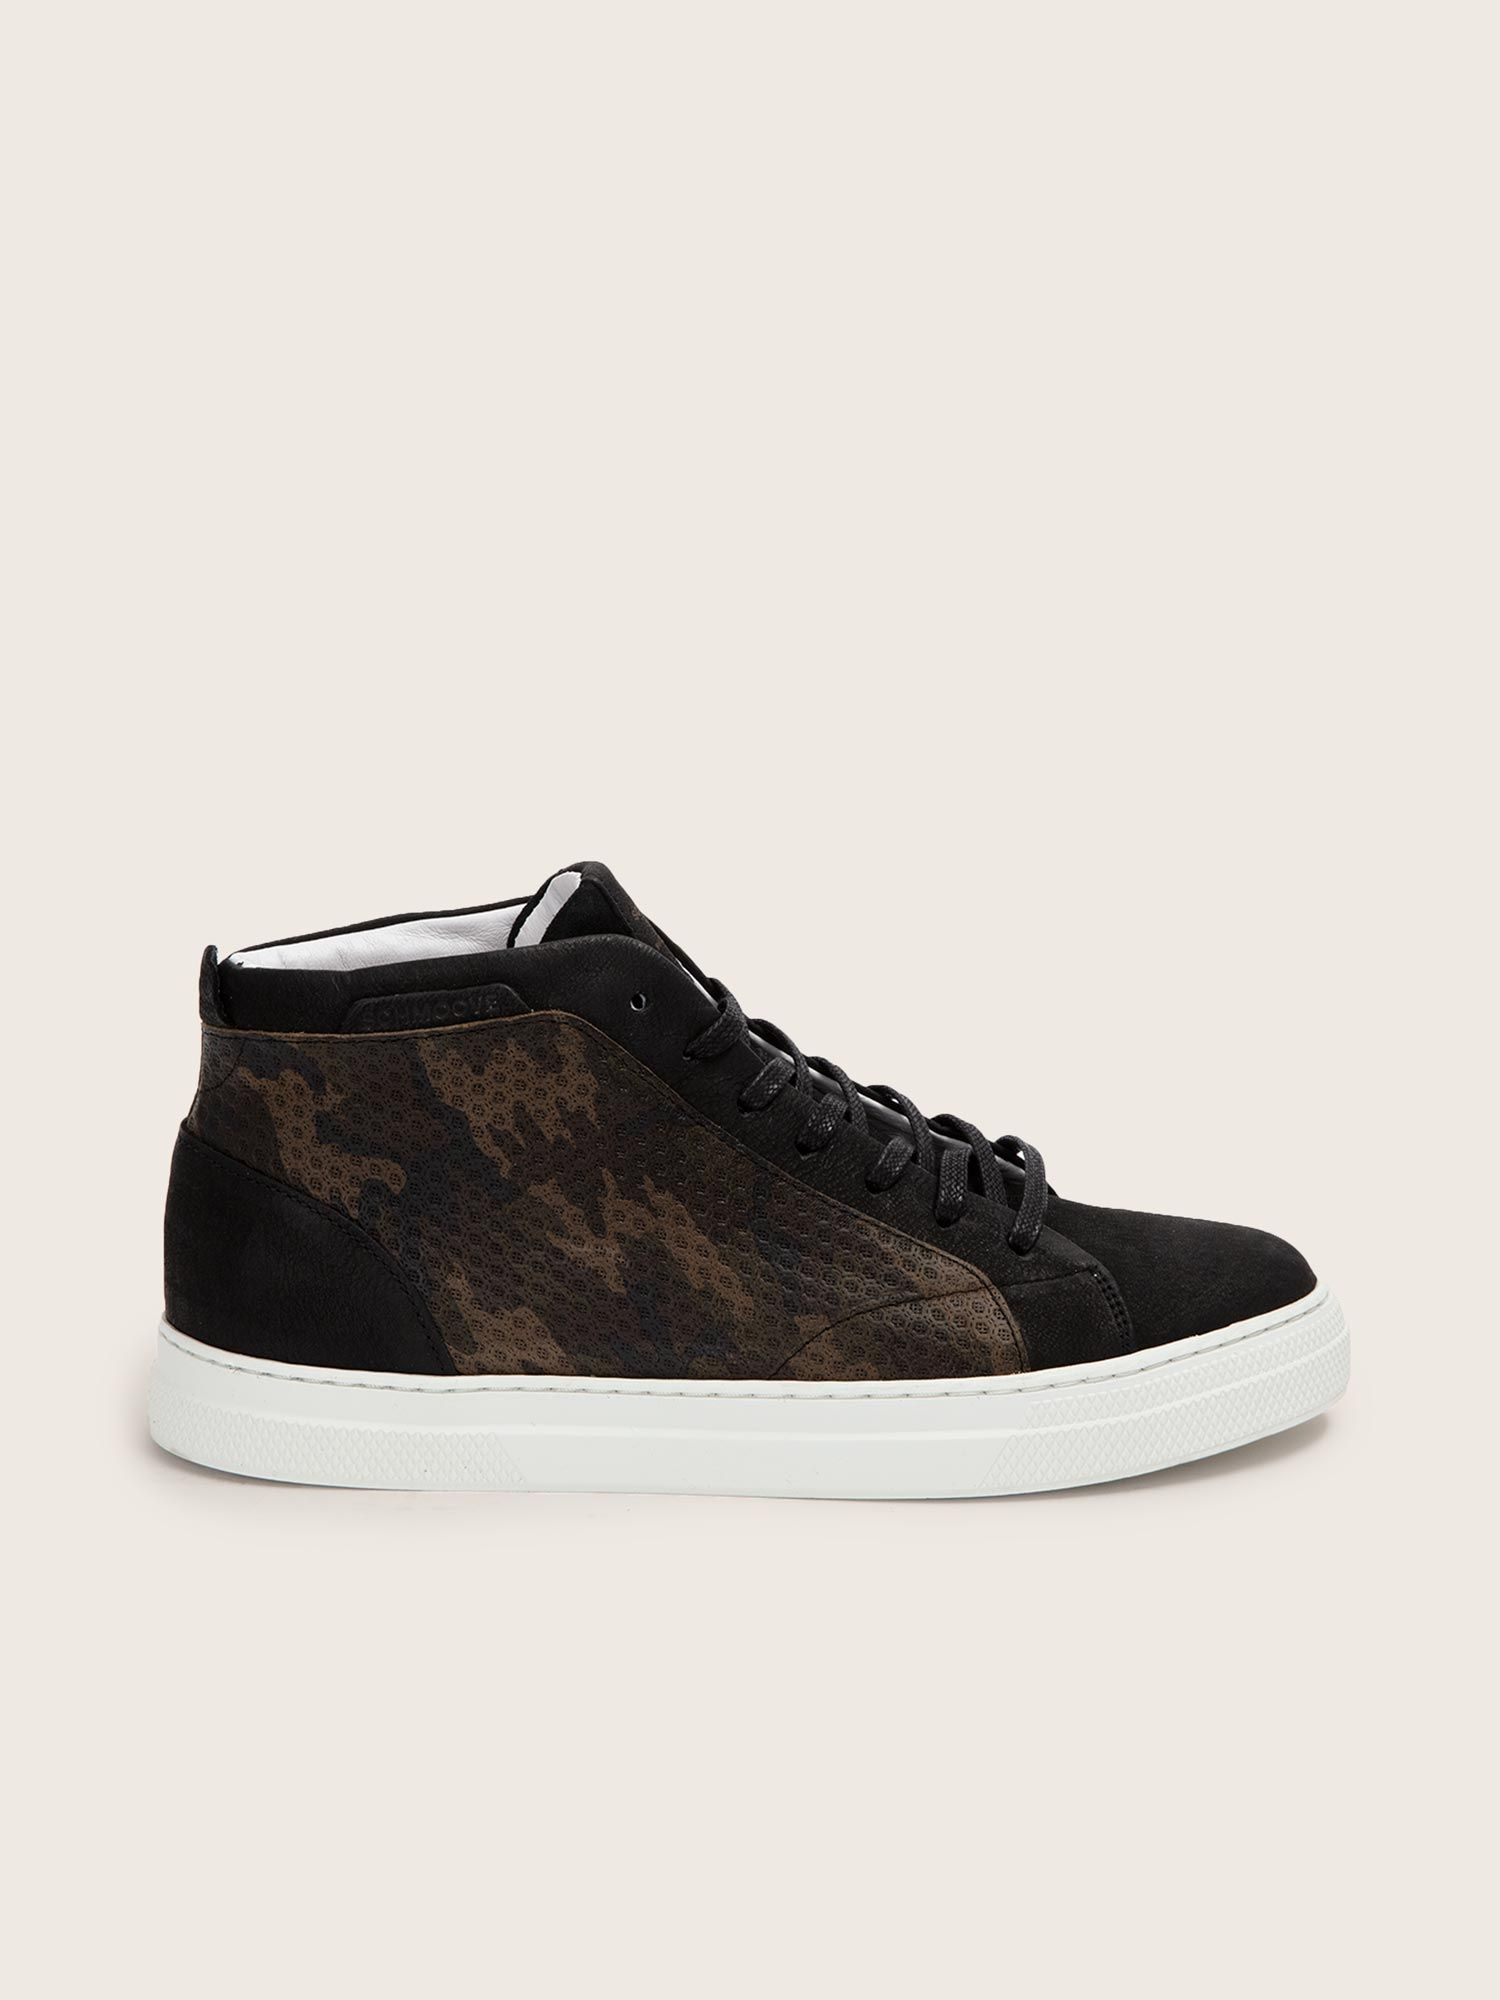 schmoove.fr SPARK MID - NUBUCK/ARMY - BLACK/BROWN